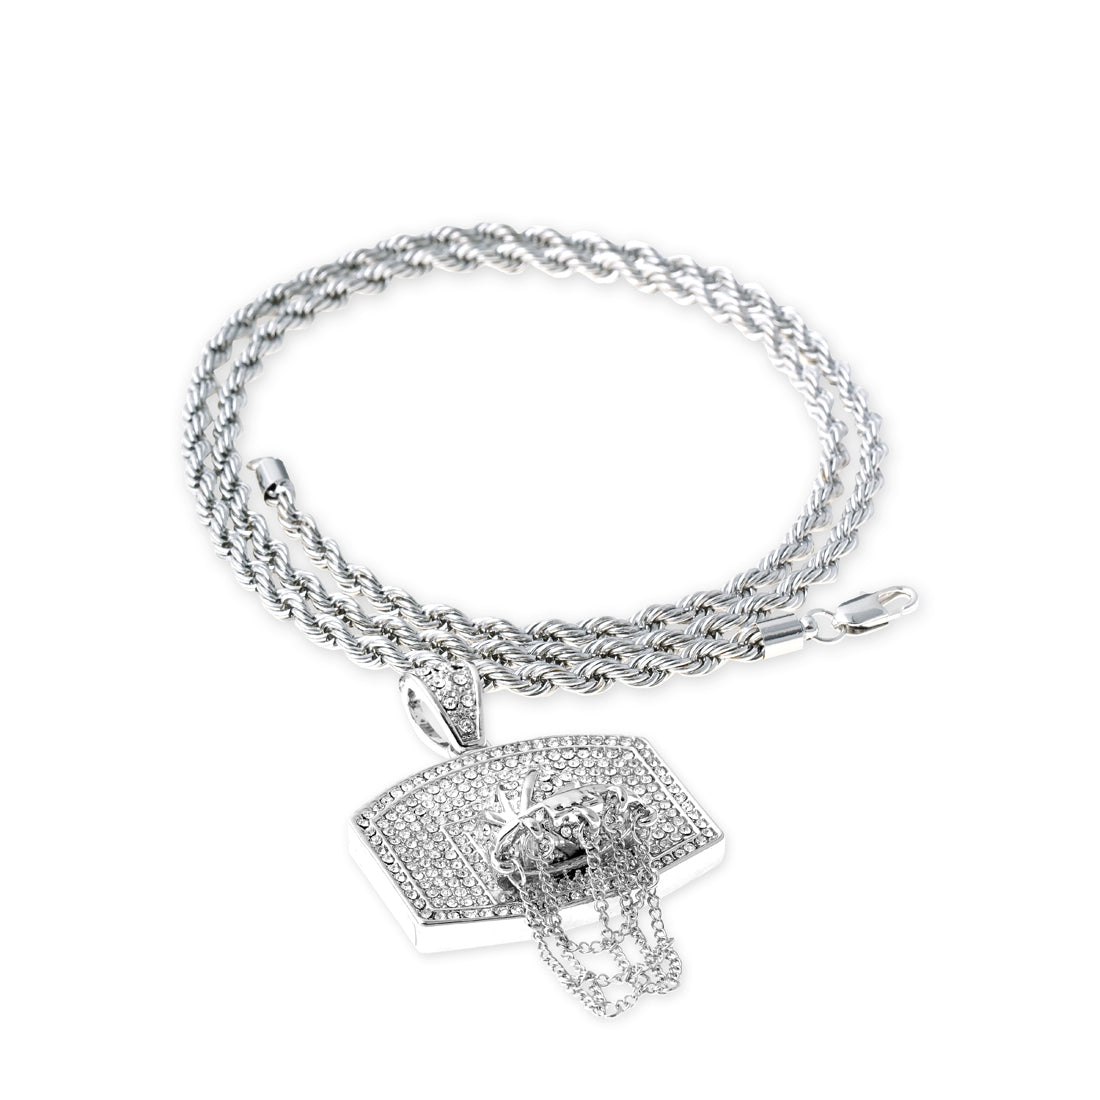 SILVER Basketball Backboard Pendant Necklace - URBANCREWS